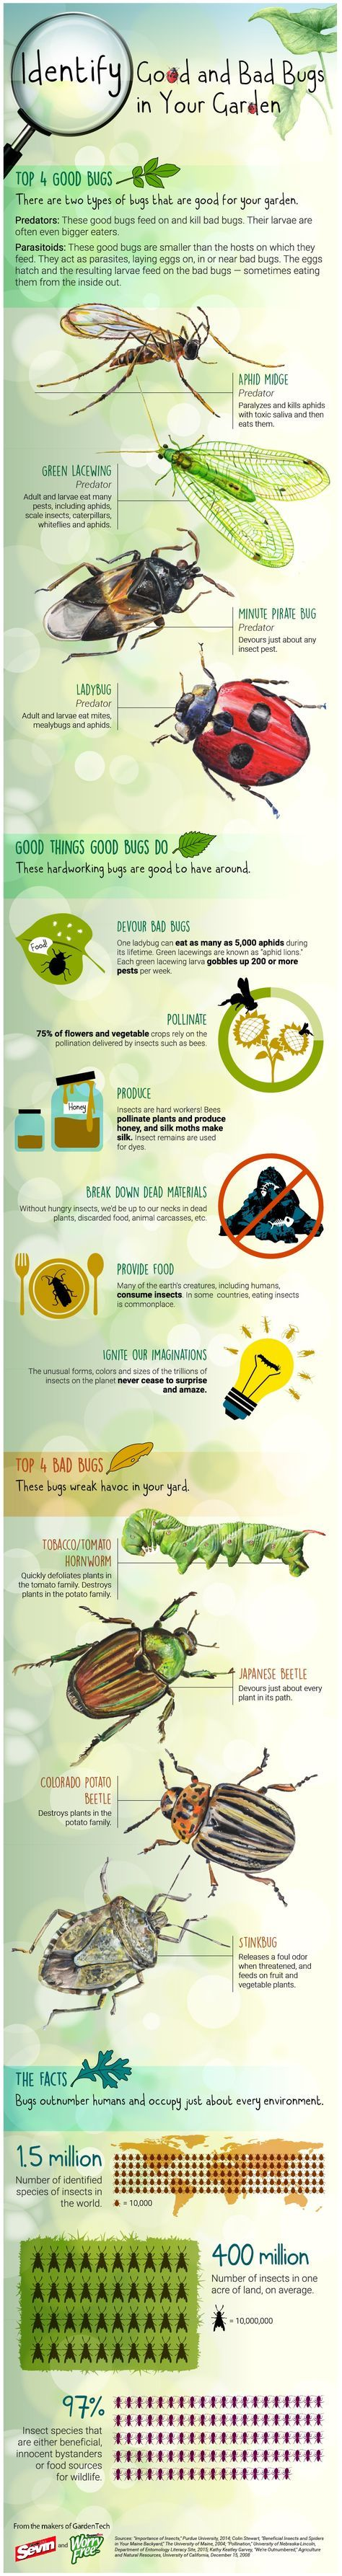 Identifying Good and Bad Bugs in Your Garden (Infographic)